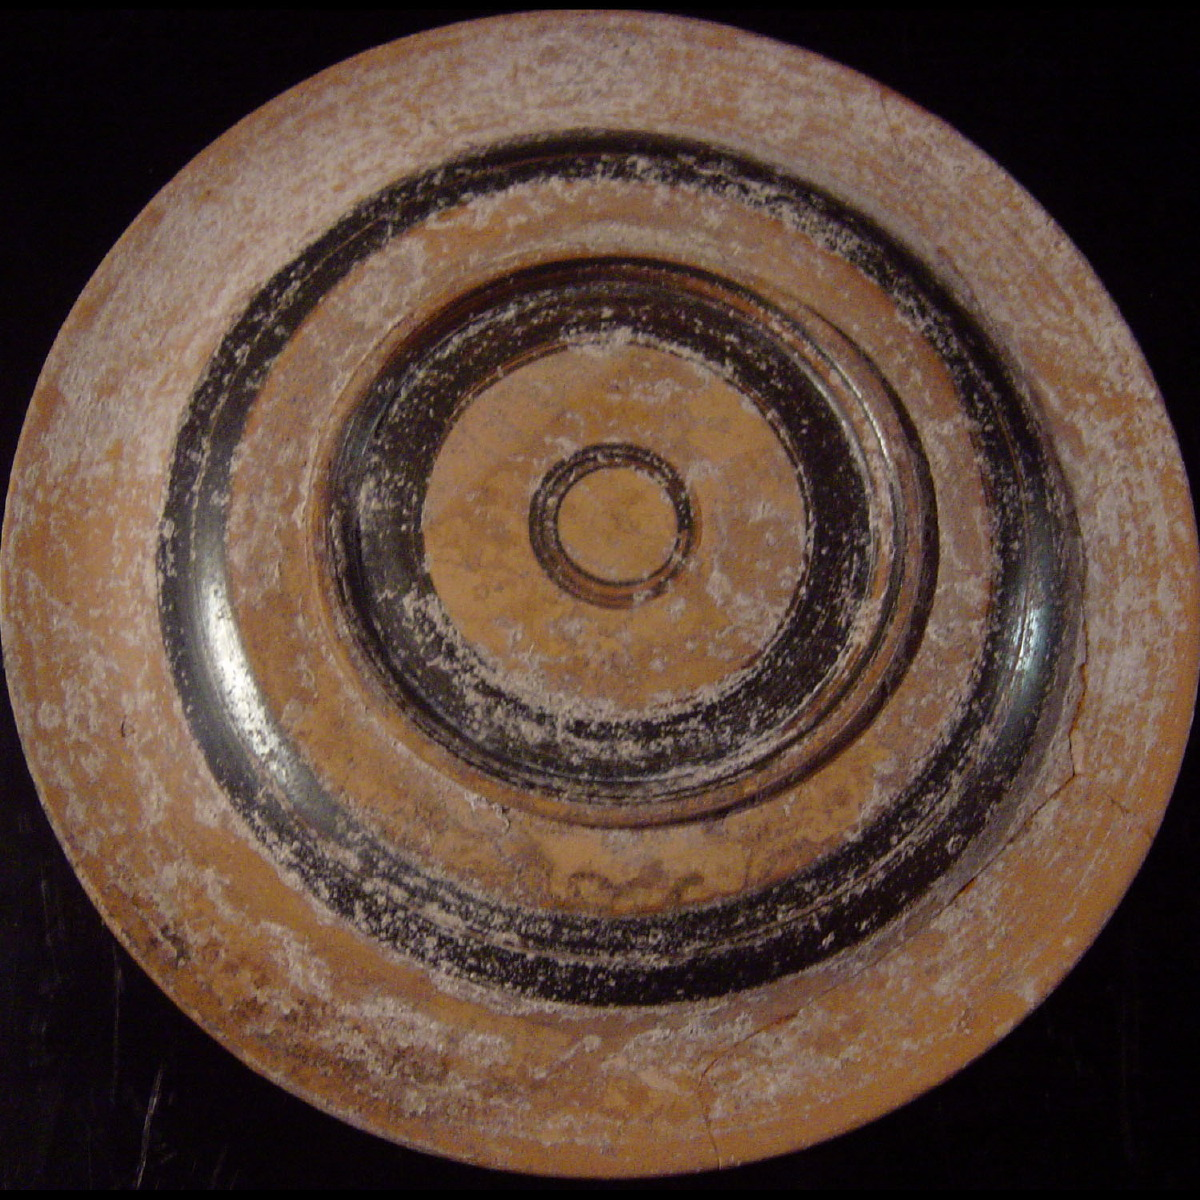 Photo of plate-apulia-cat-galerie-golconda-archeology